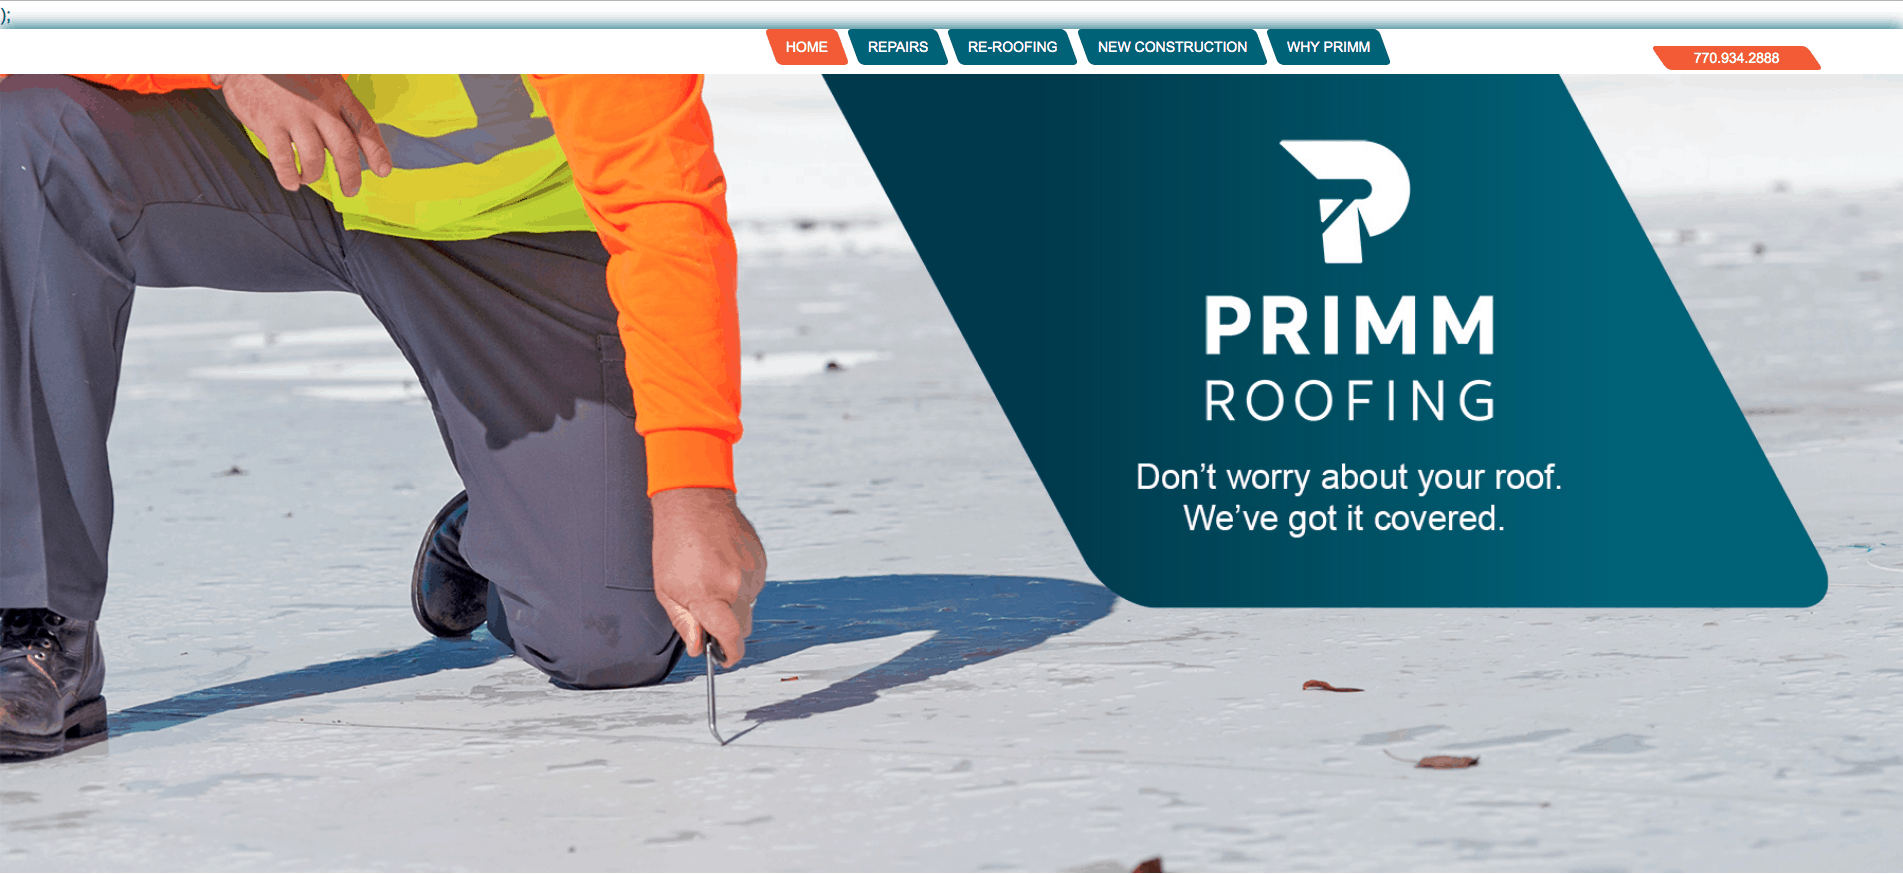 Primm Roofing Old Home Page